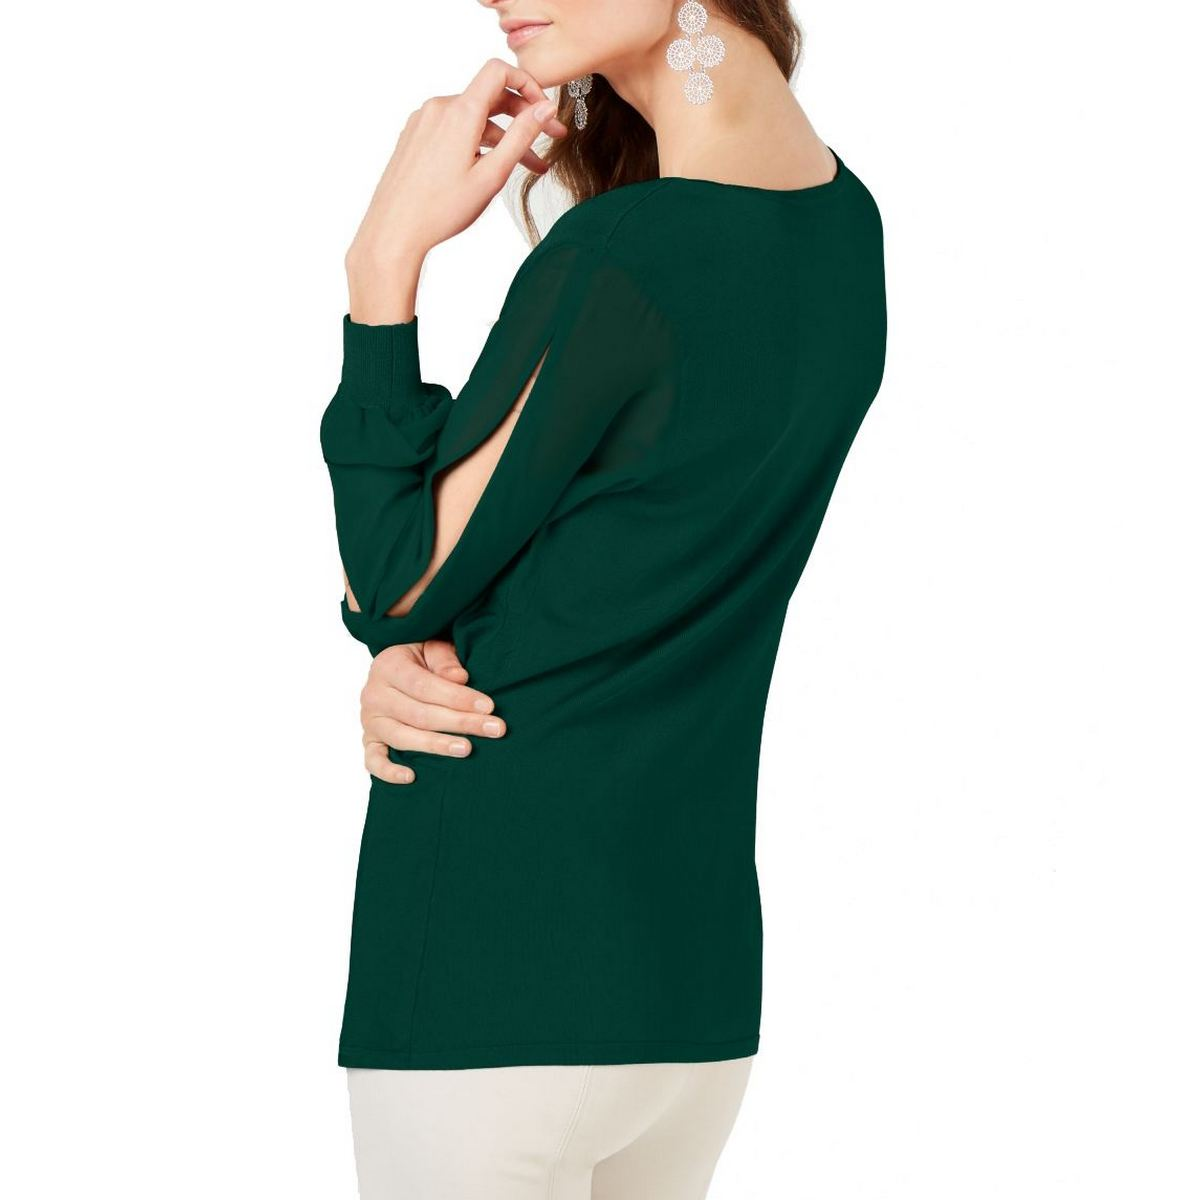 INC-NEW-Women-039-s-Surplice-Illusion-sleeve-Knit-Blouse-Shirt-Top-TEDO thumbnail 3